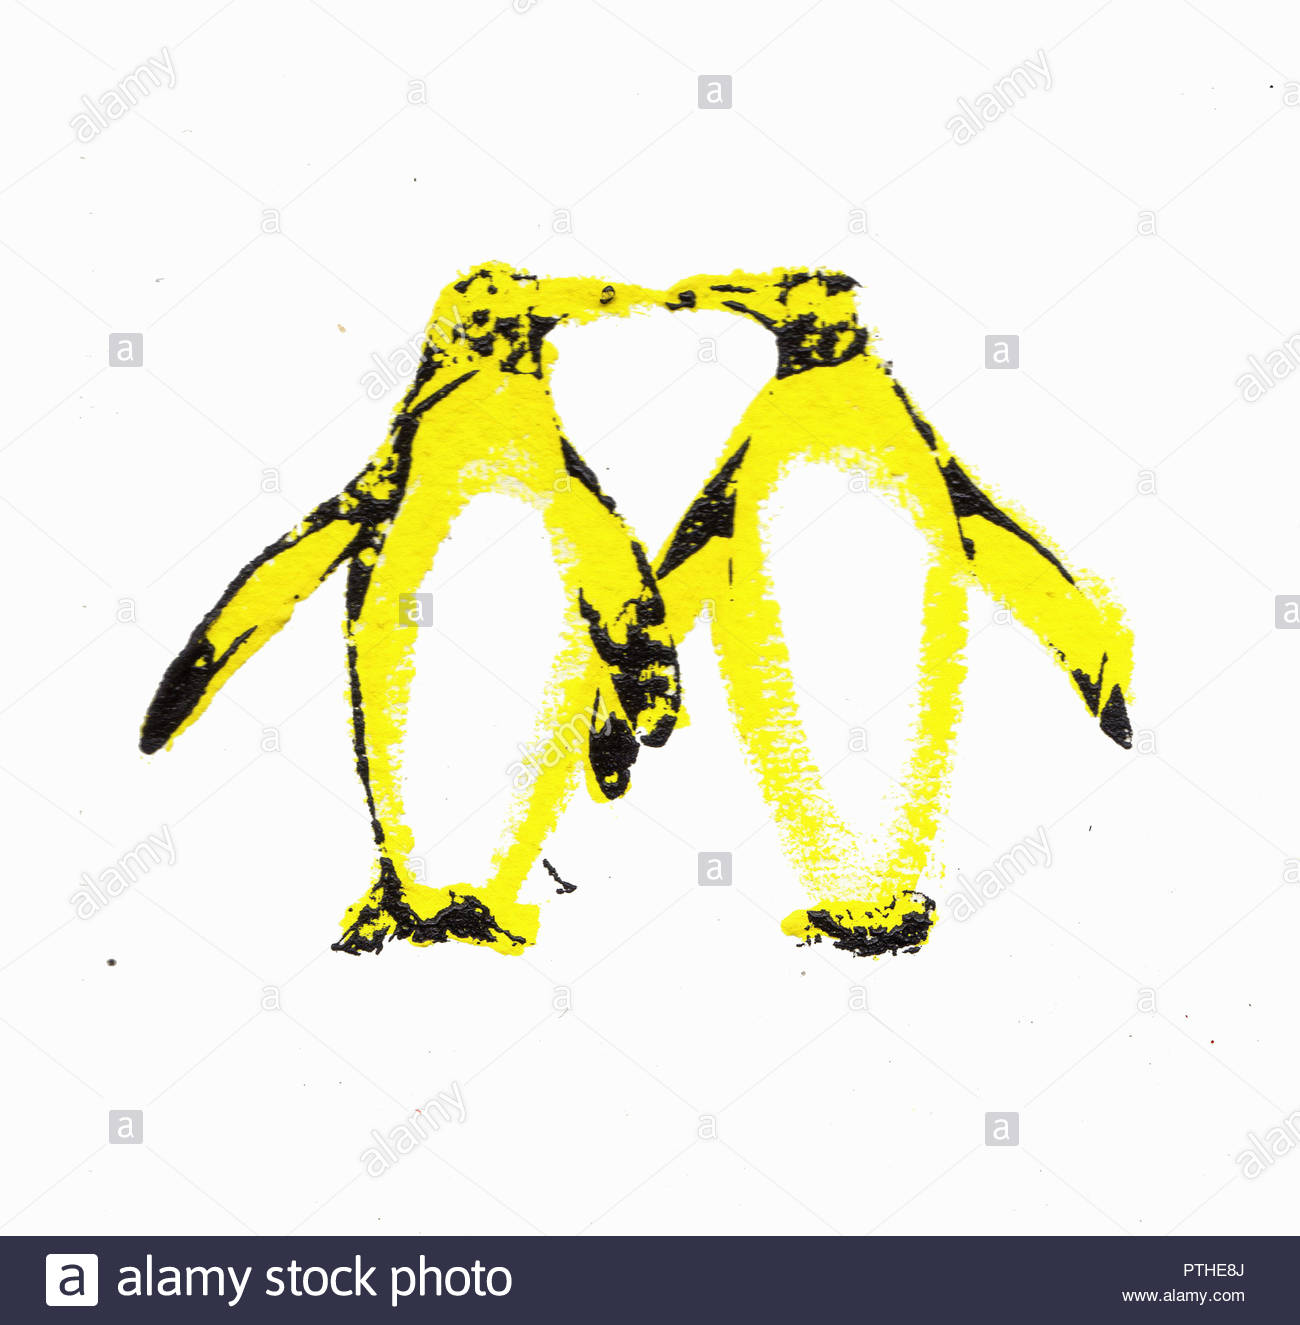 Two penguins kissing with necks forming heart shape - Stock Image